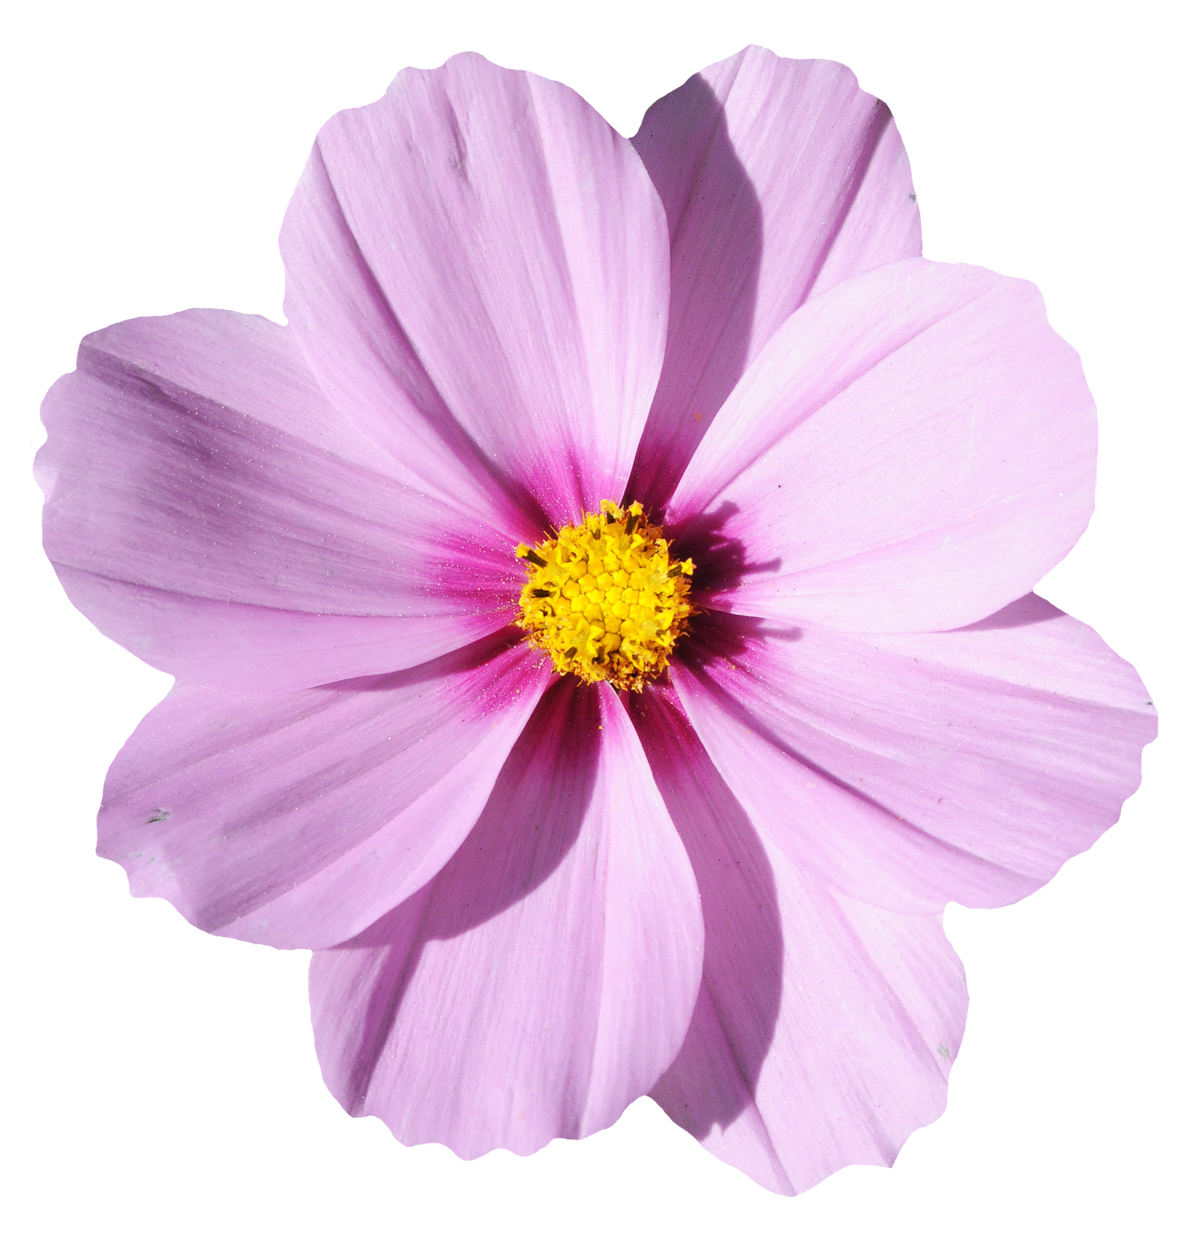 Blossom Flower Png Image Flower Png Images Flower Images Abstract Flowers